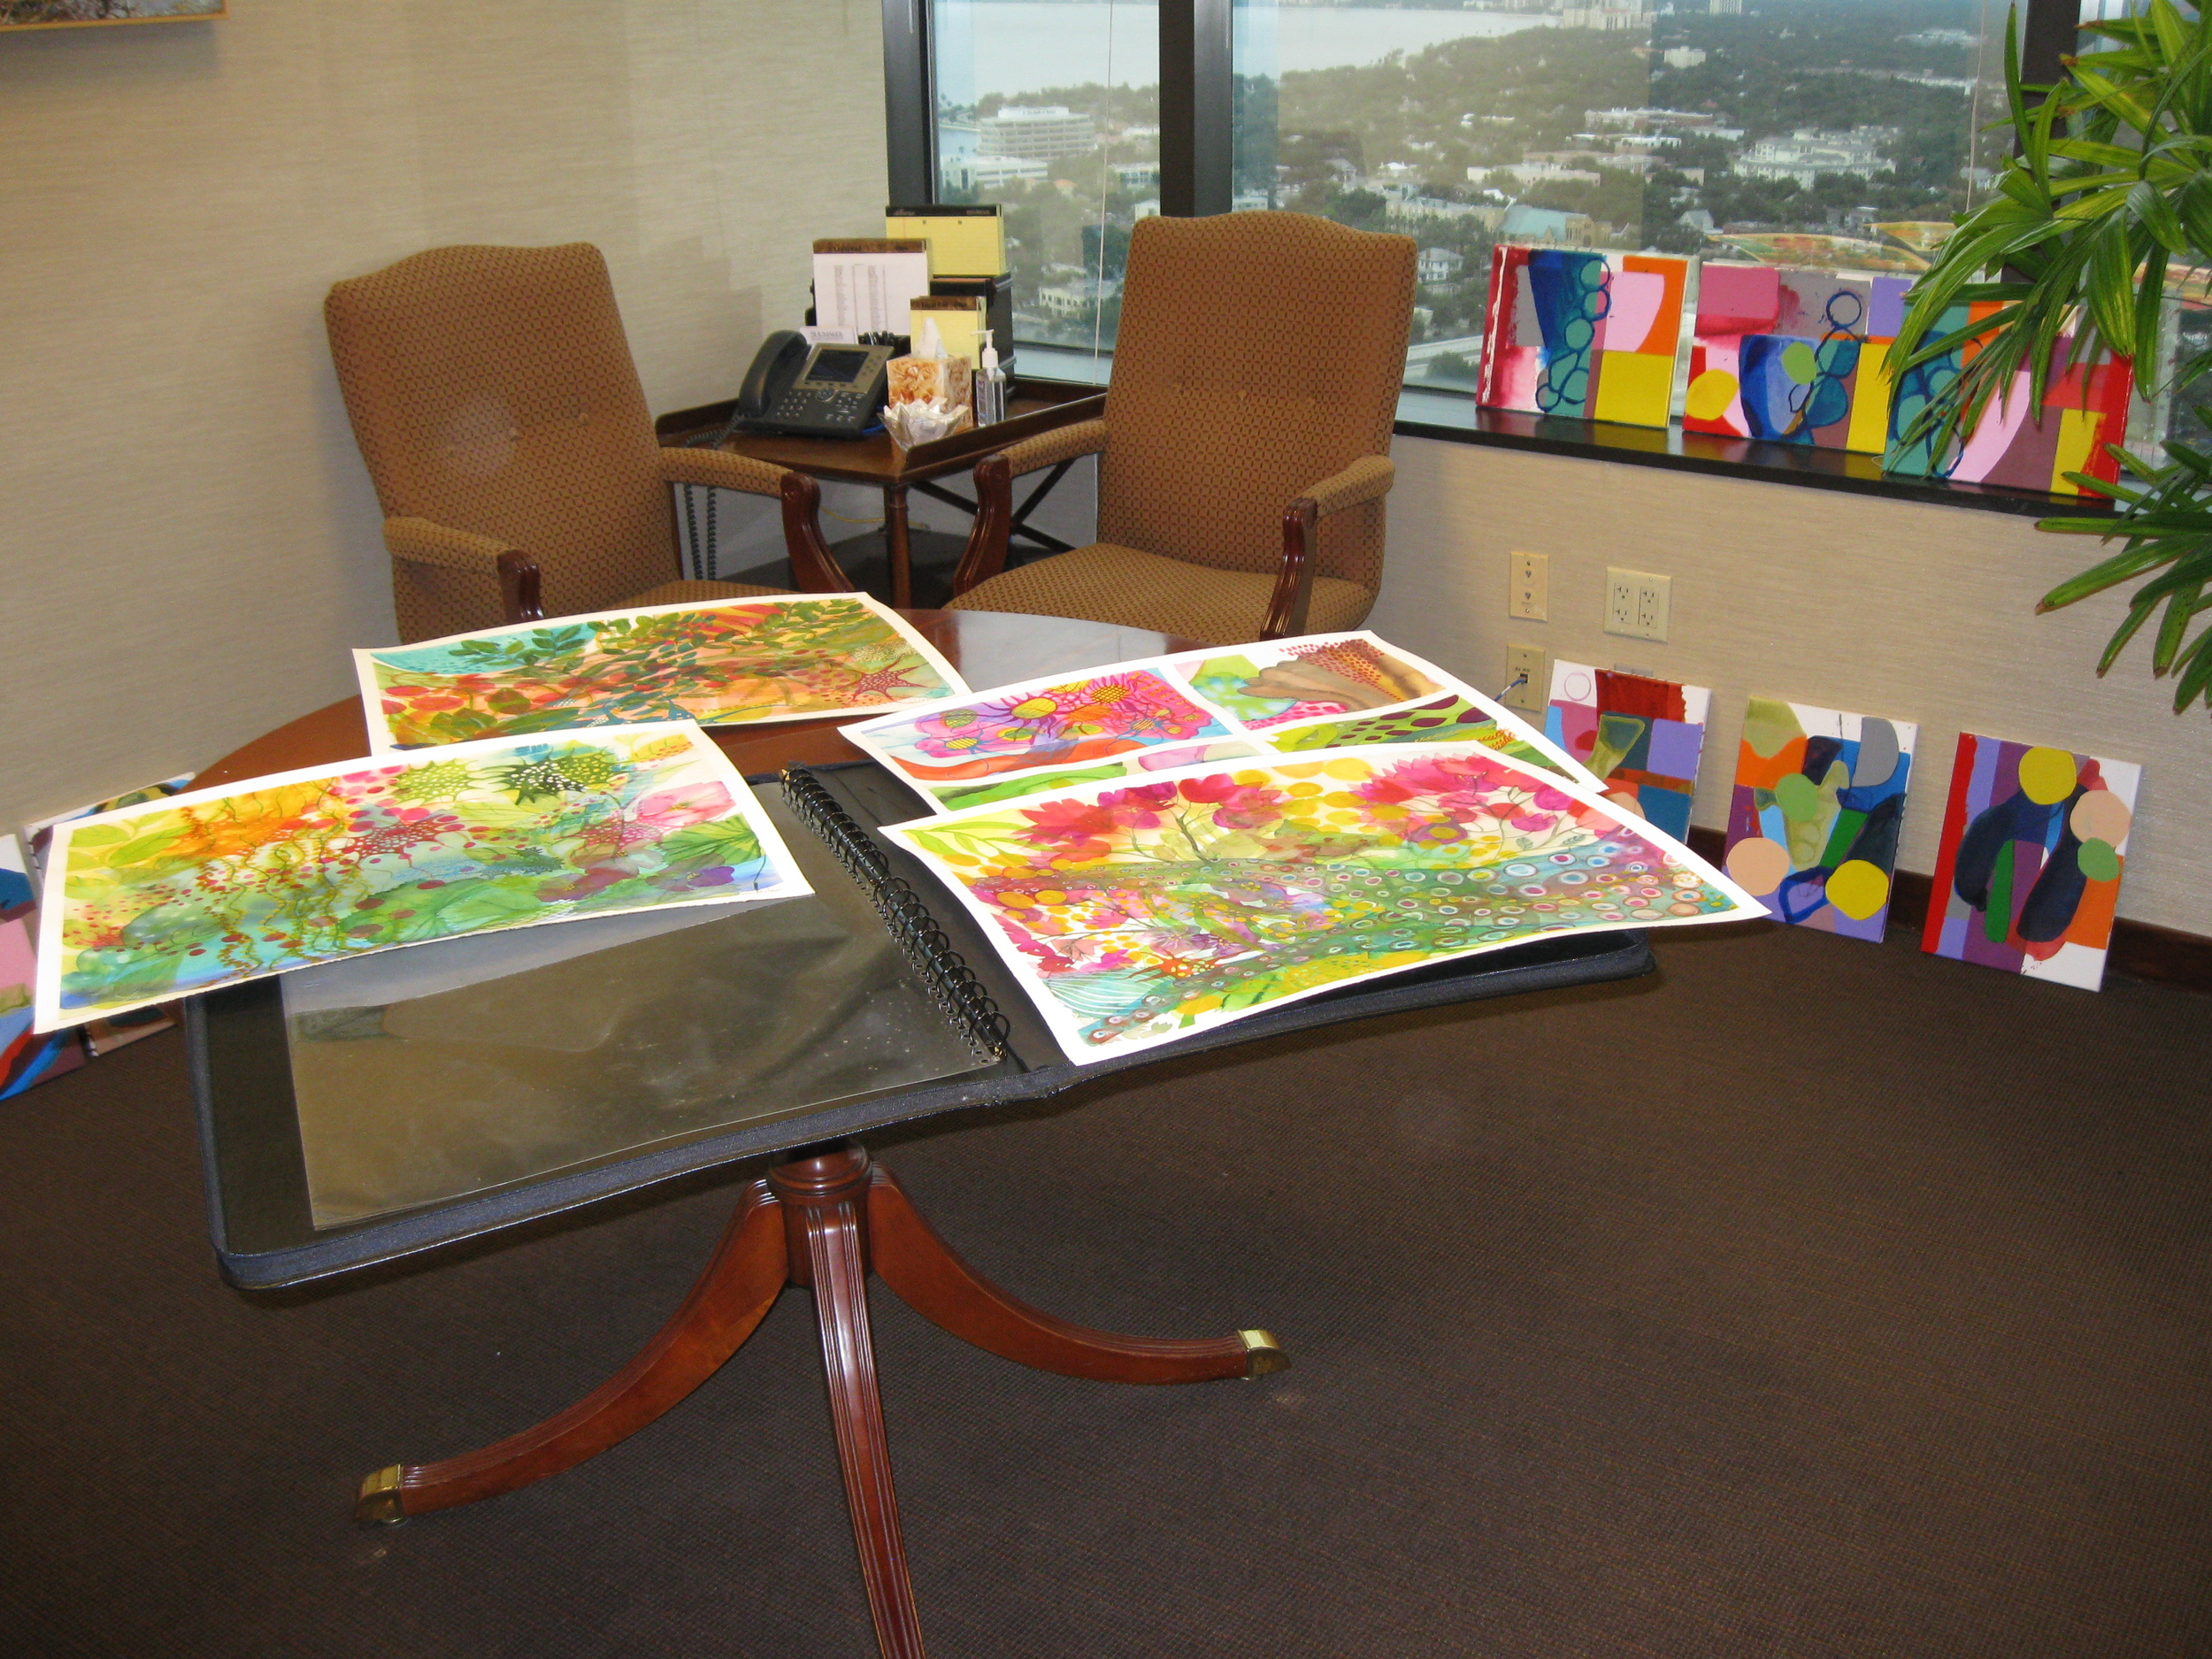 Watercolors displayed on table by Sara Golding Scher; acrylic on canvas series, leaning on right, by George Anderton